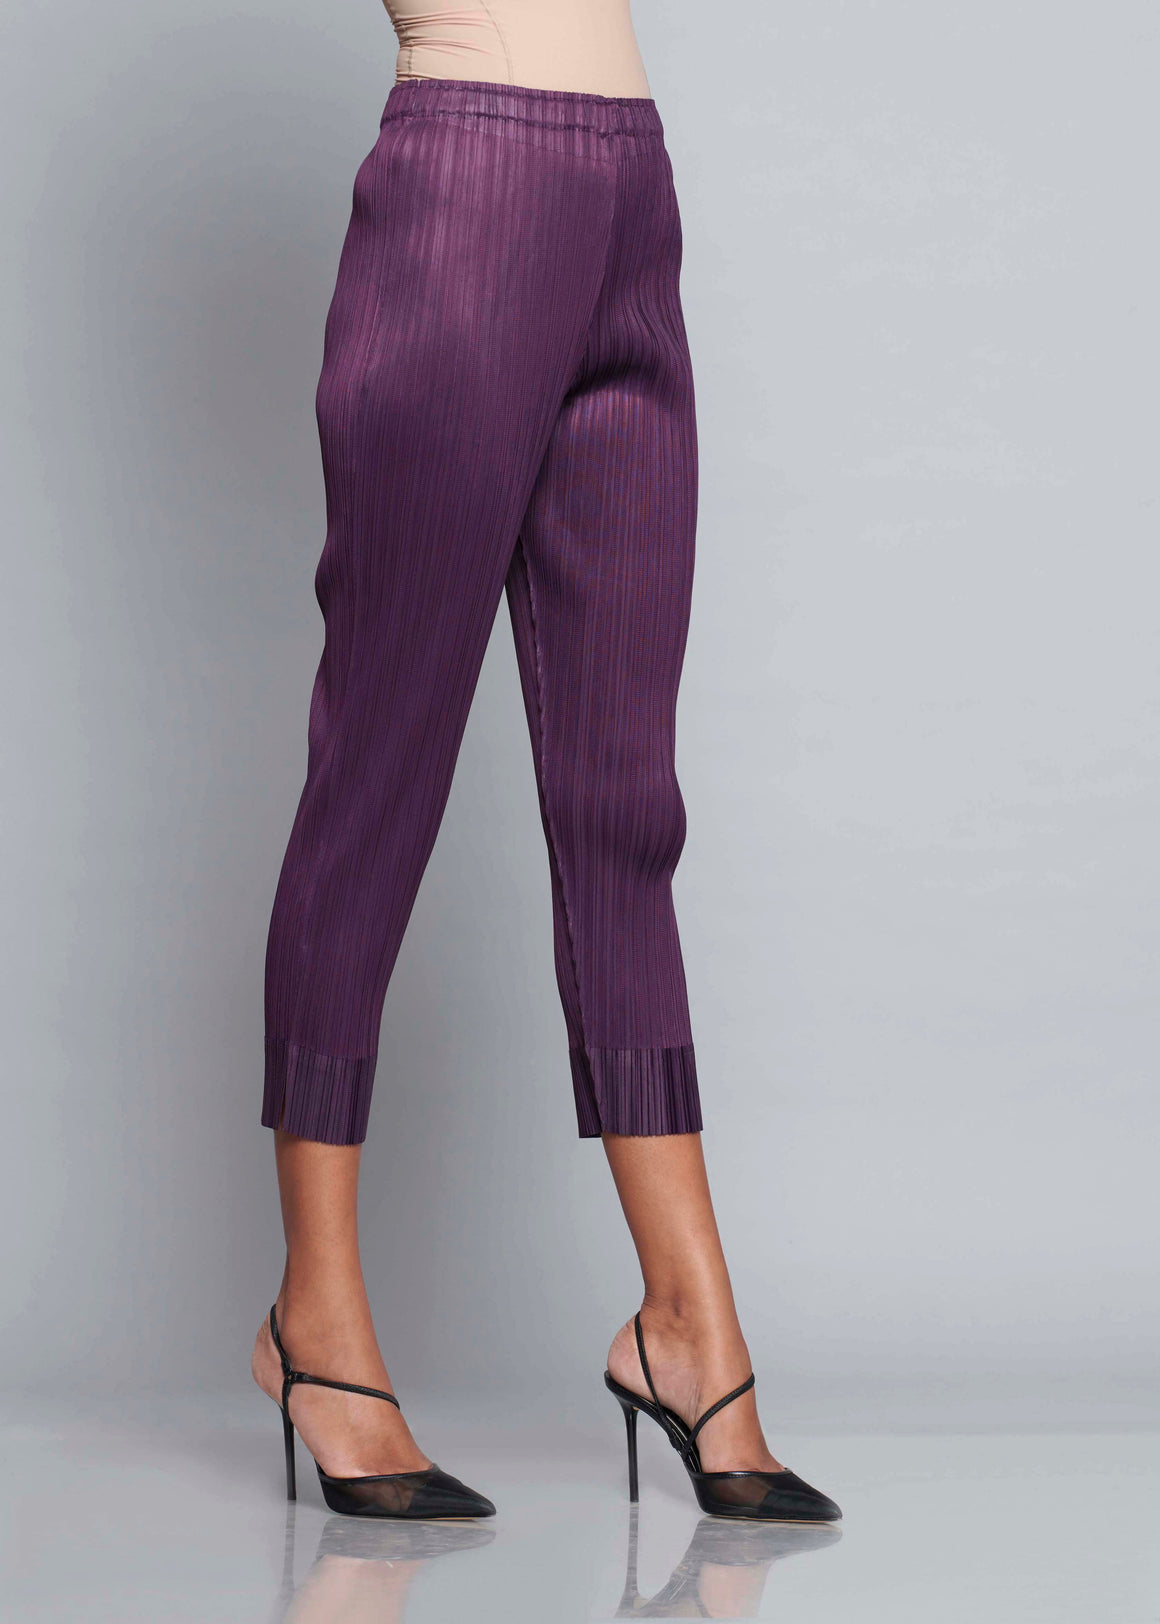 Pleated Slim Pants - Grape Purple